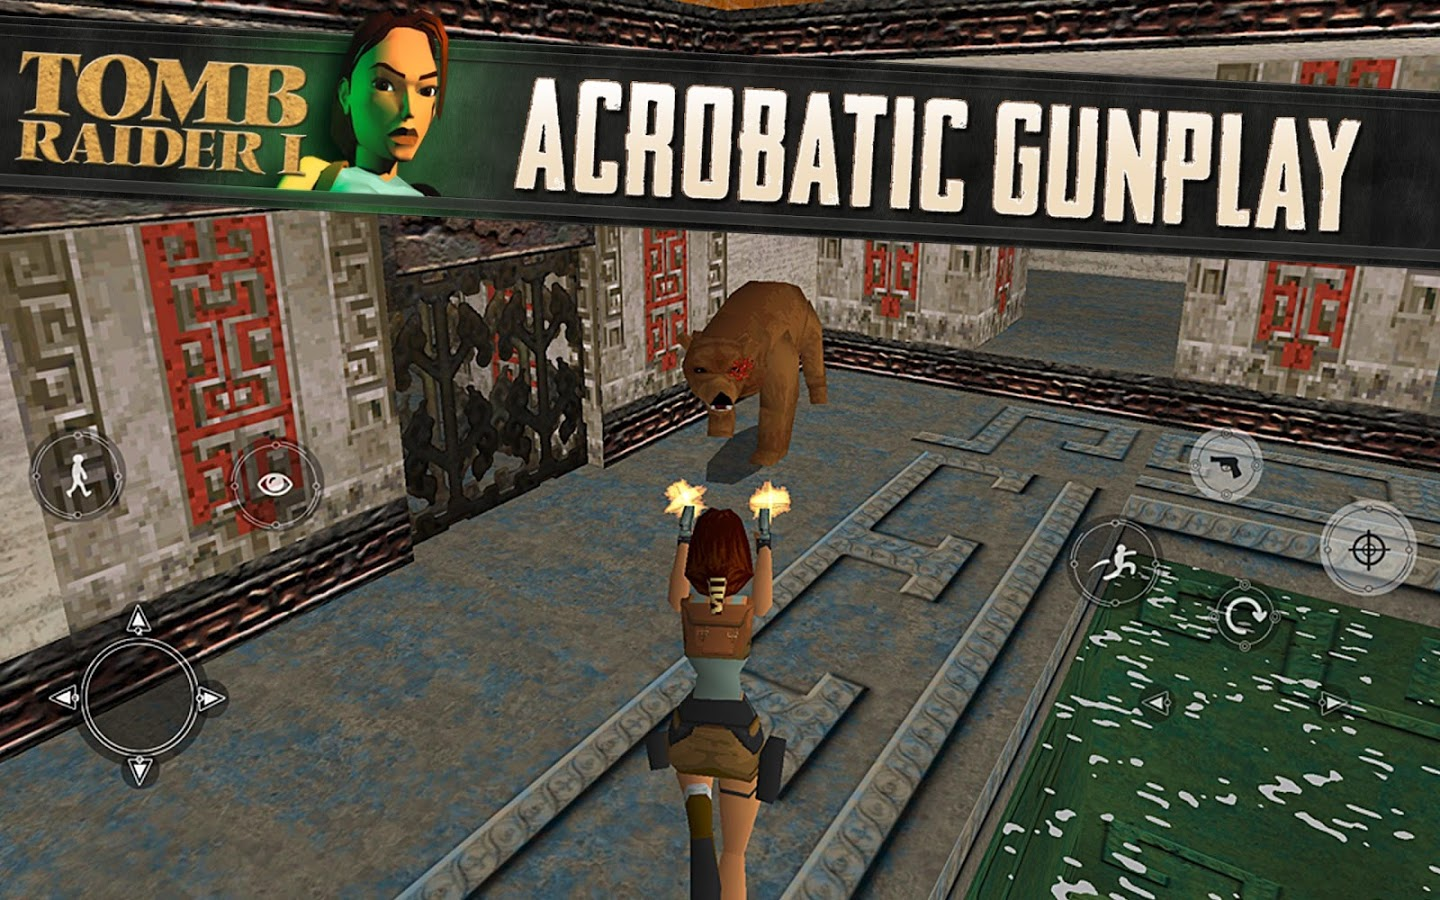 Lara Croft finally comes to Android, with the original Tomb Raider